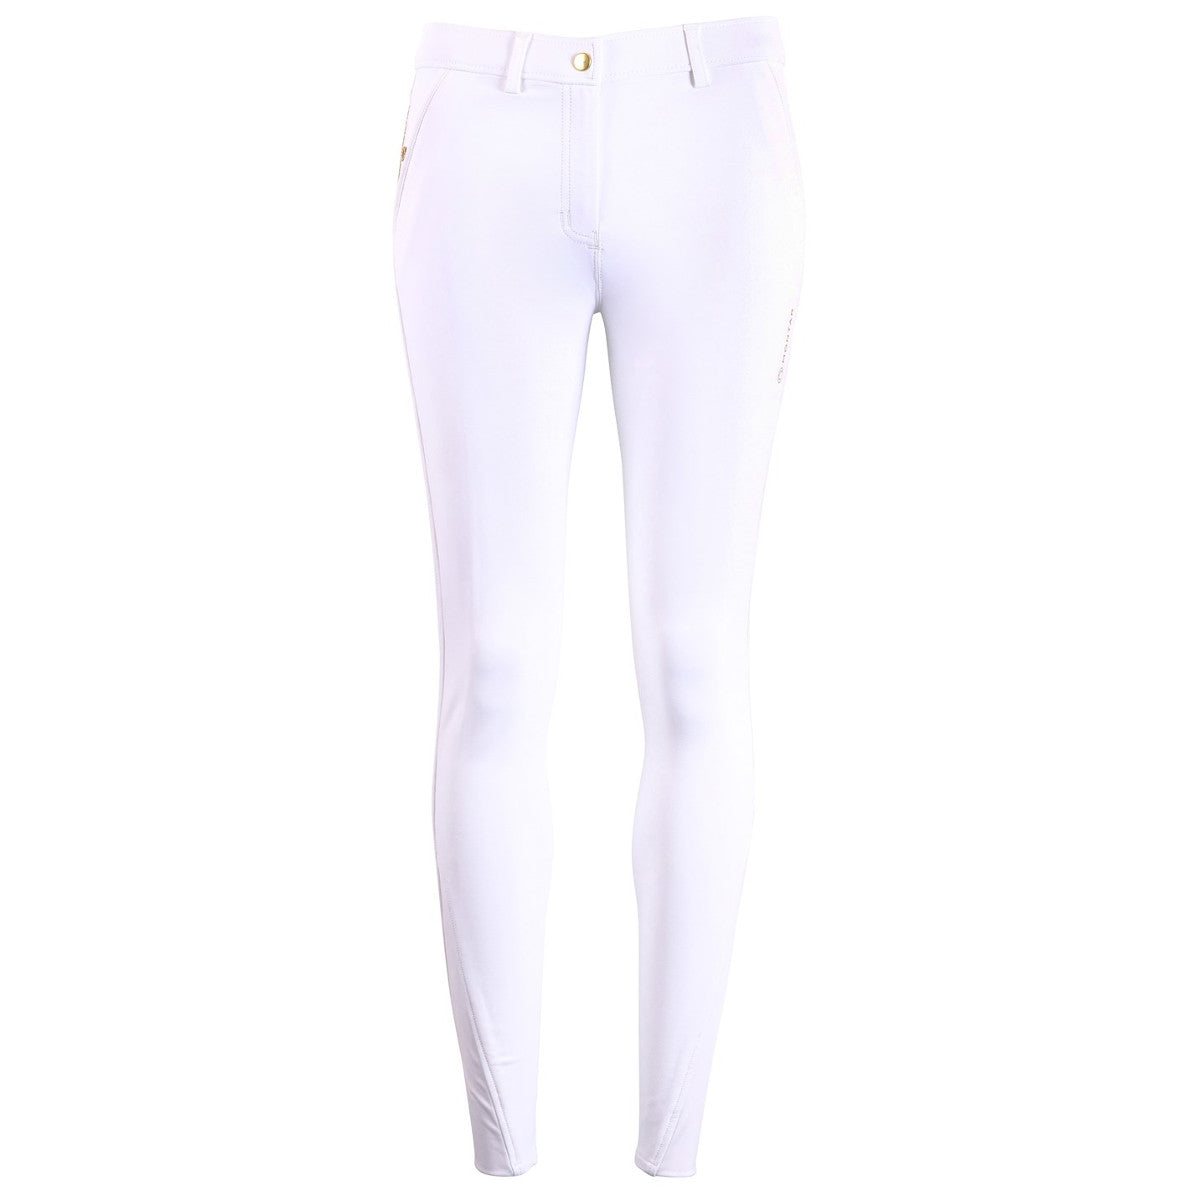 Montar Women's White Astrid Yati Full Seat Breeches